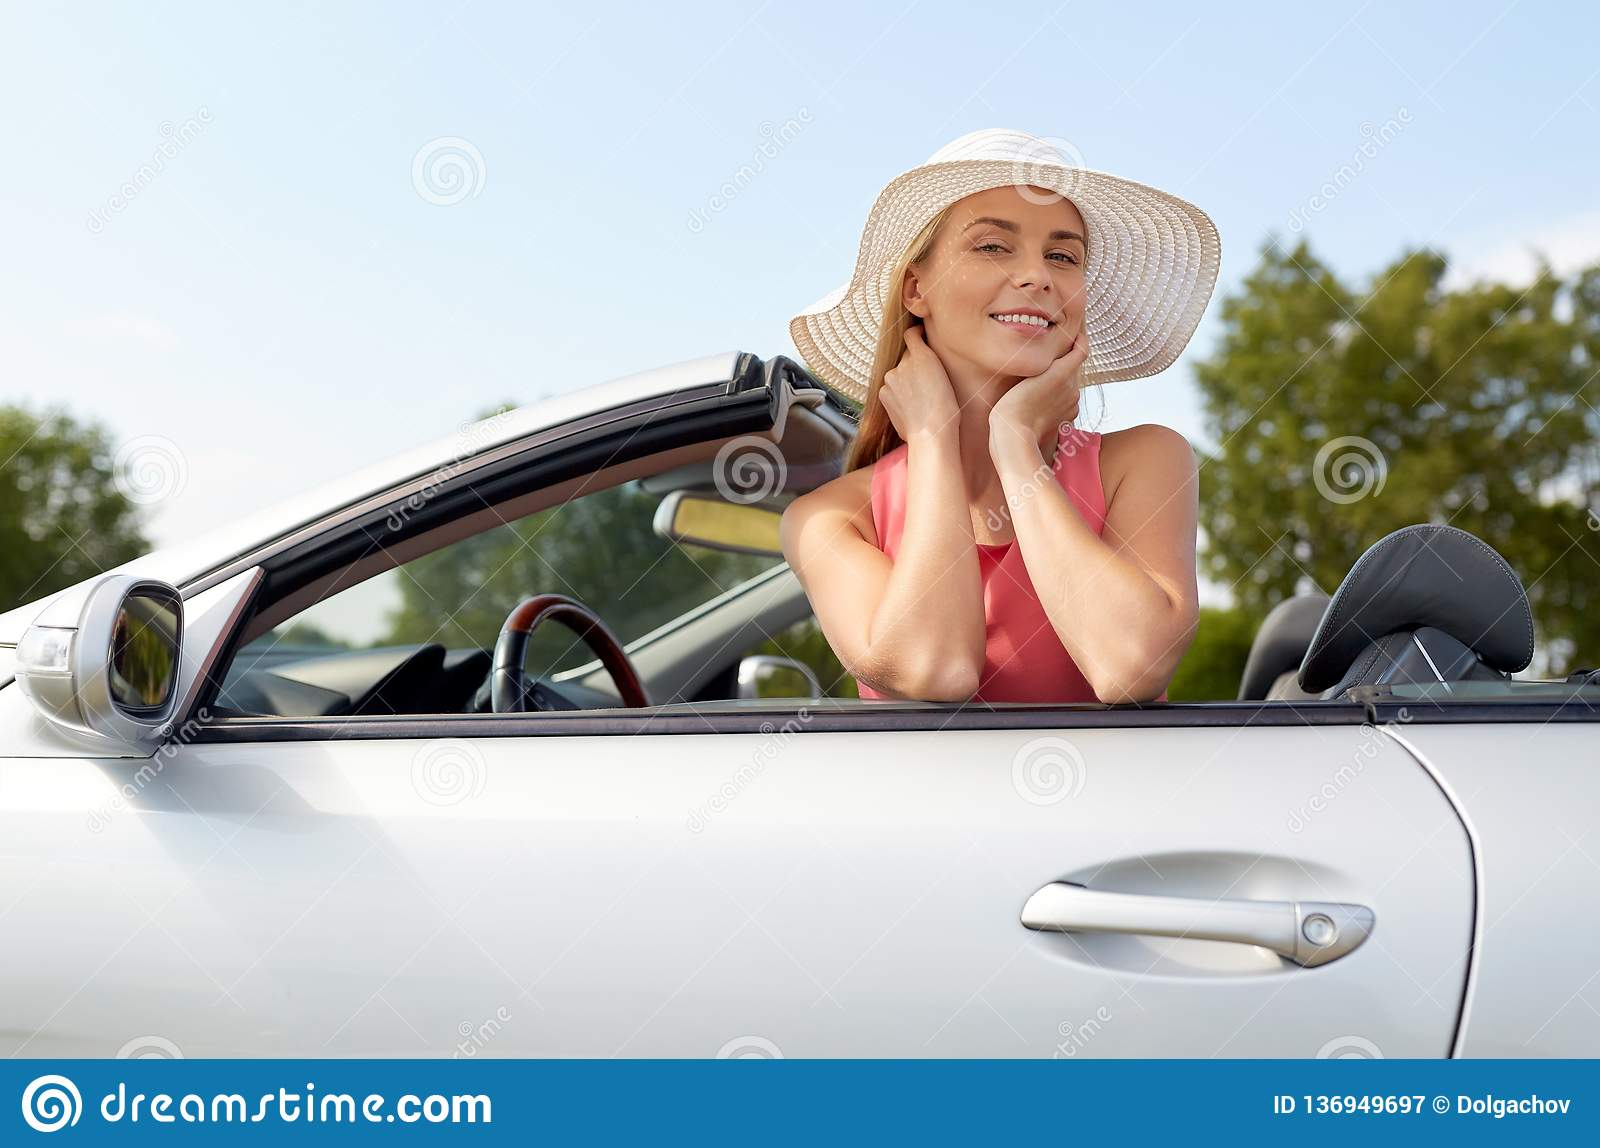 d8da23c5c8407 Happy Young Woman In Convertible Car Stock Image - Image of concept ...